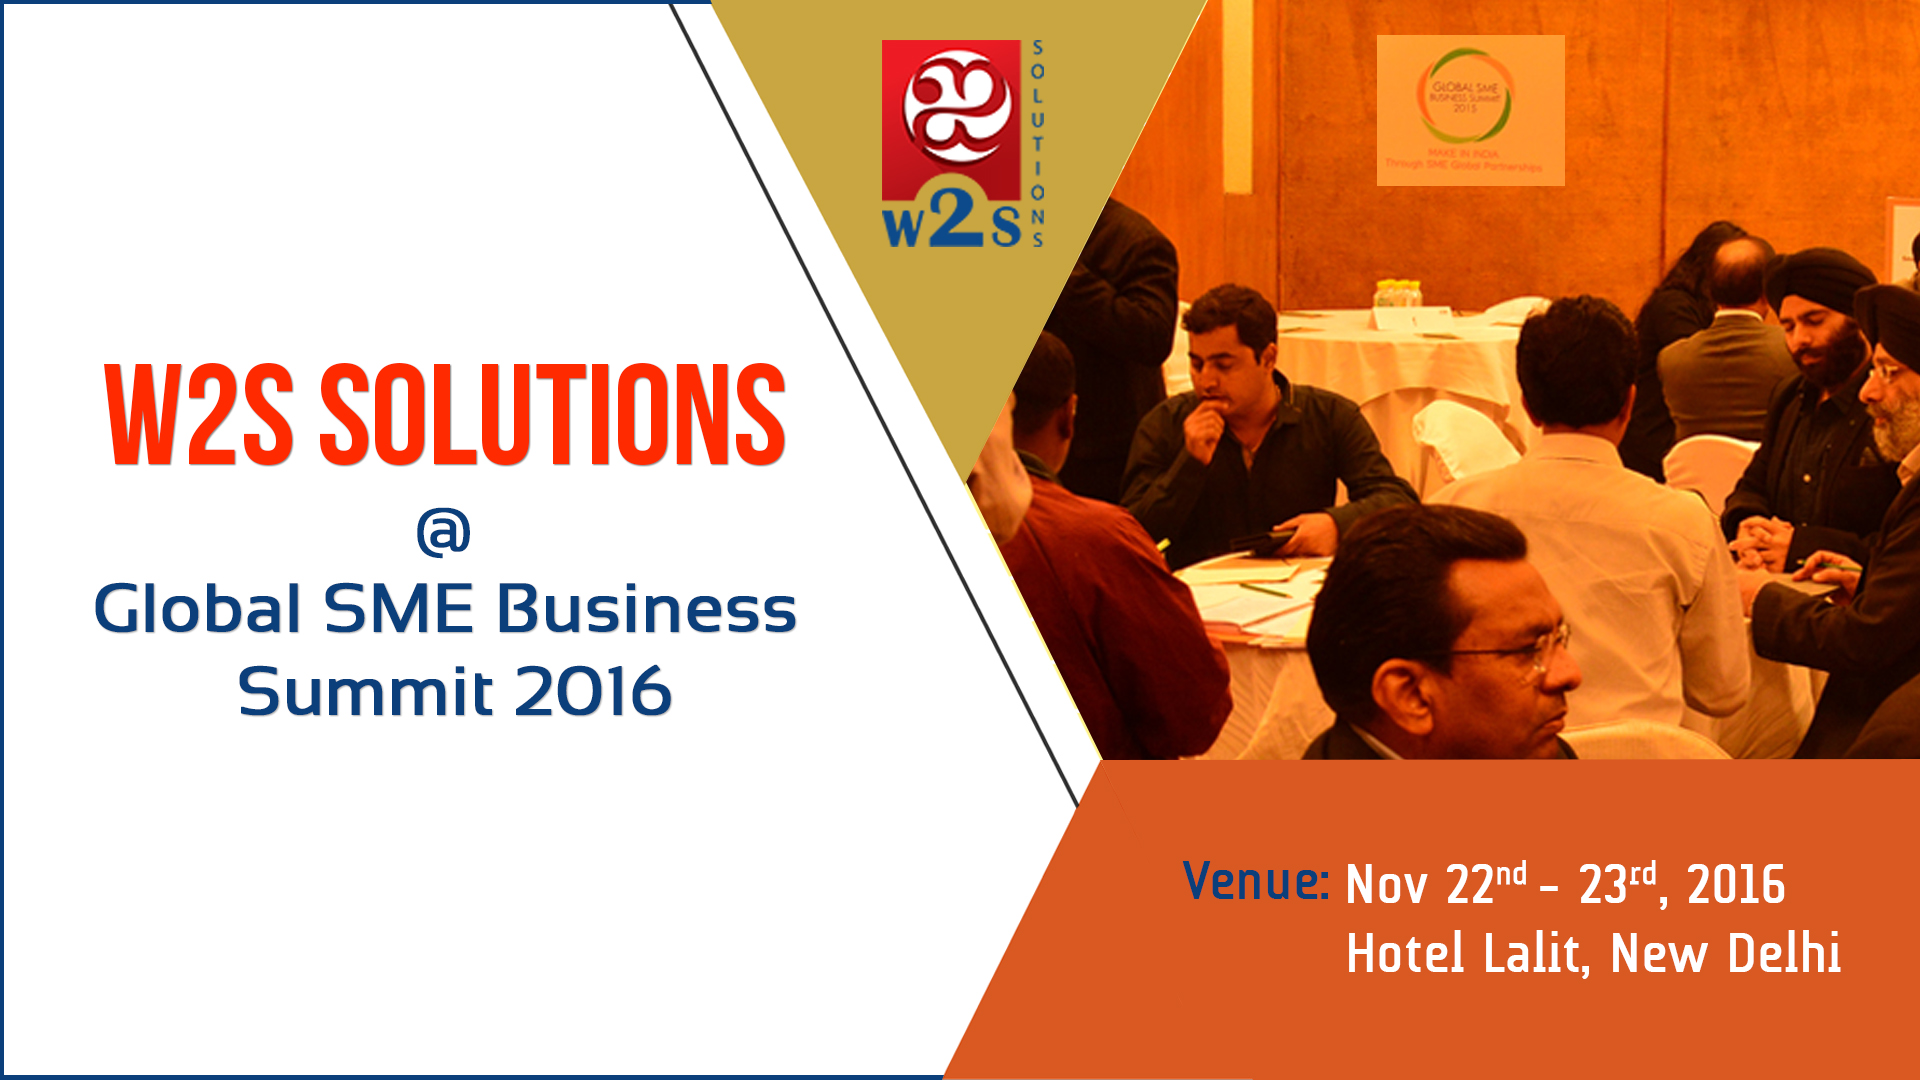 Catch W2S Solutions at Global SME Business Summit 2016